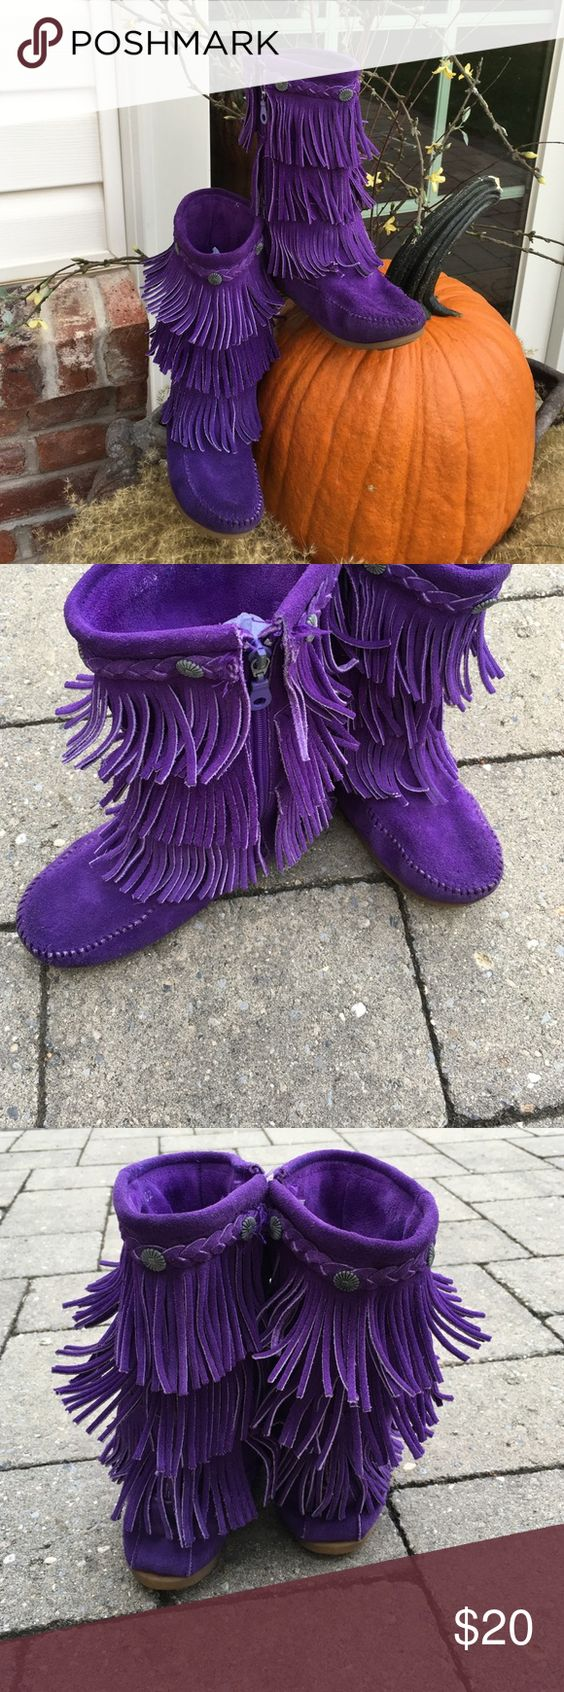 """Minnetonka Kid's Fringe Boot Three tiers of fringe cover the tall shaft of a flat suede boot, trimmed with whipstitching along the seams for subtle detail. Flower-shaped ornaments along the braided collar complete the stylish look. 7 1/2"""" boot shaft; 11"""" calf circumference (size 12). Side zip closure. Suede upper and lining/rubber sole. By Minnetonka; imported. Great condition except for some wear on the inner part near the bottom. See last photo. However not noticeable when wearing. Outer…"""